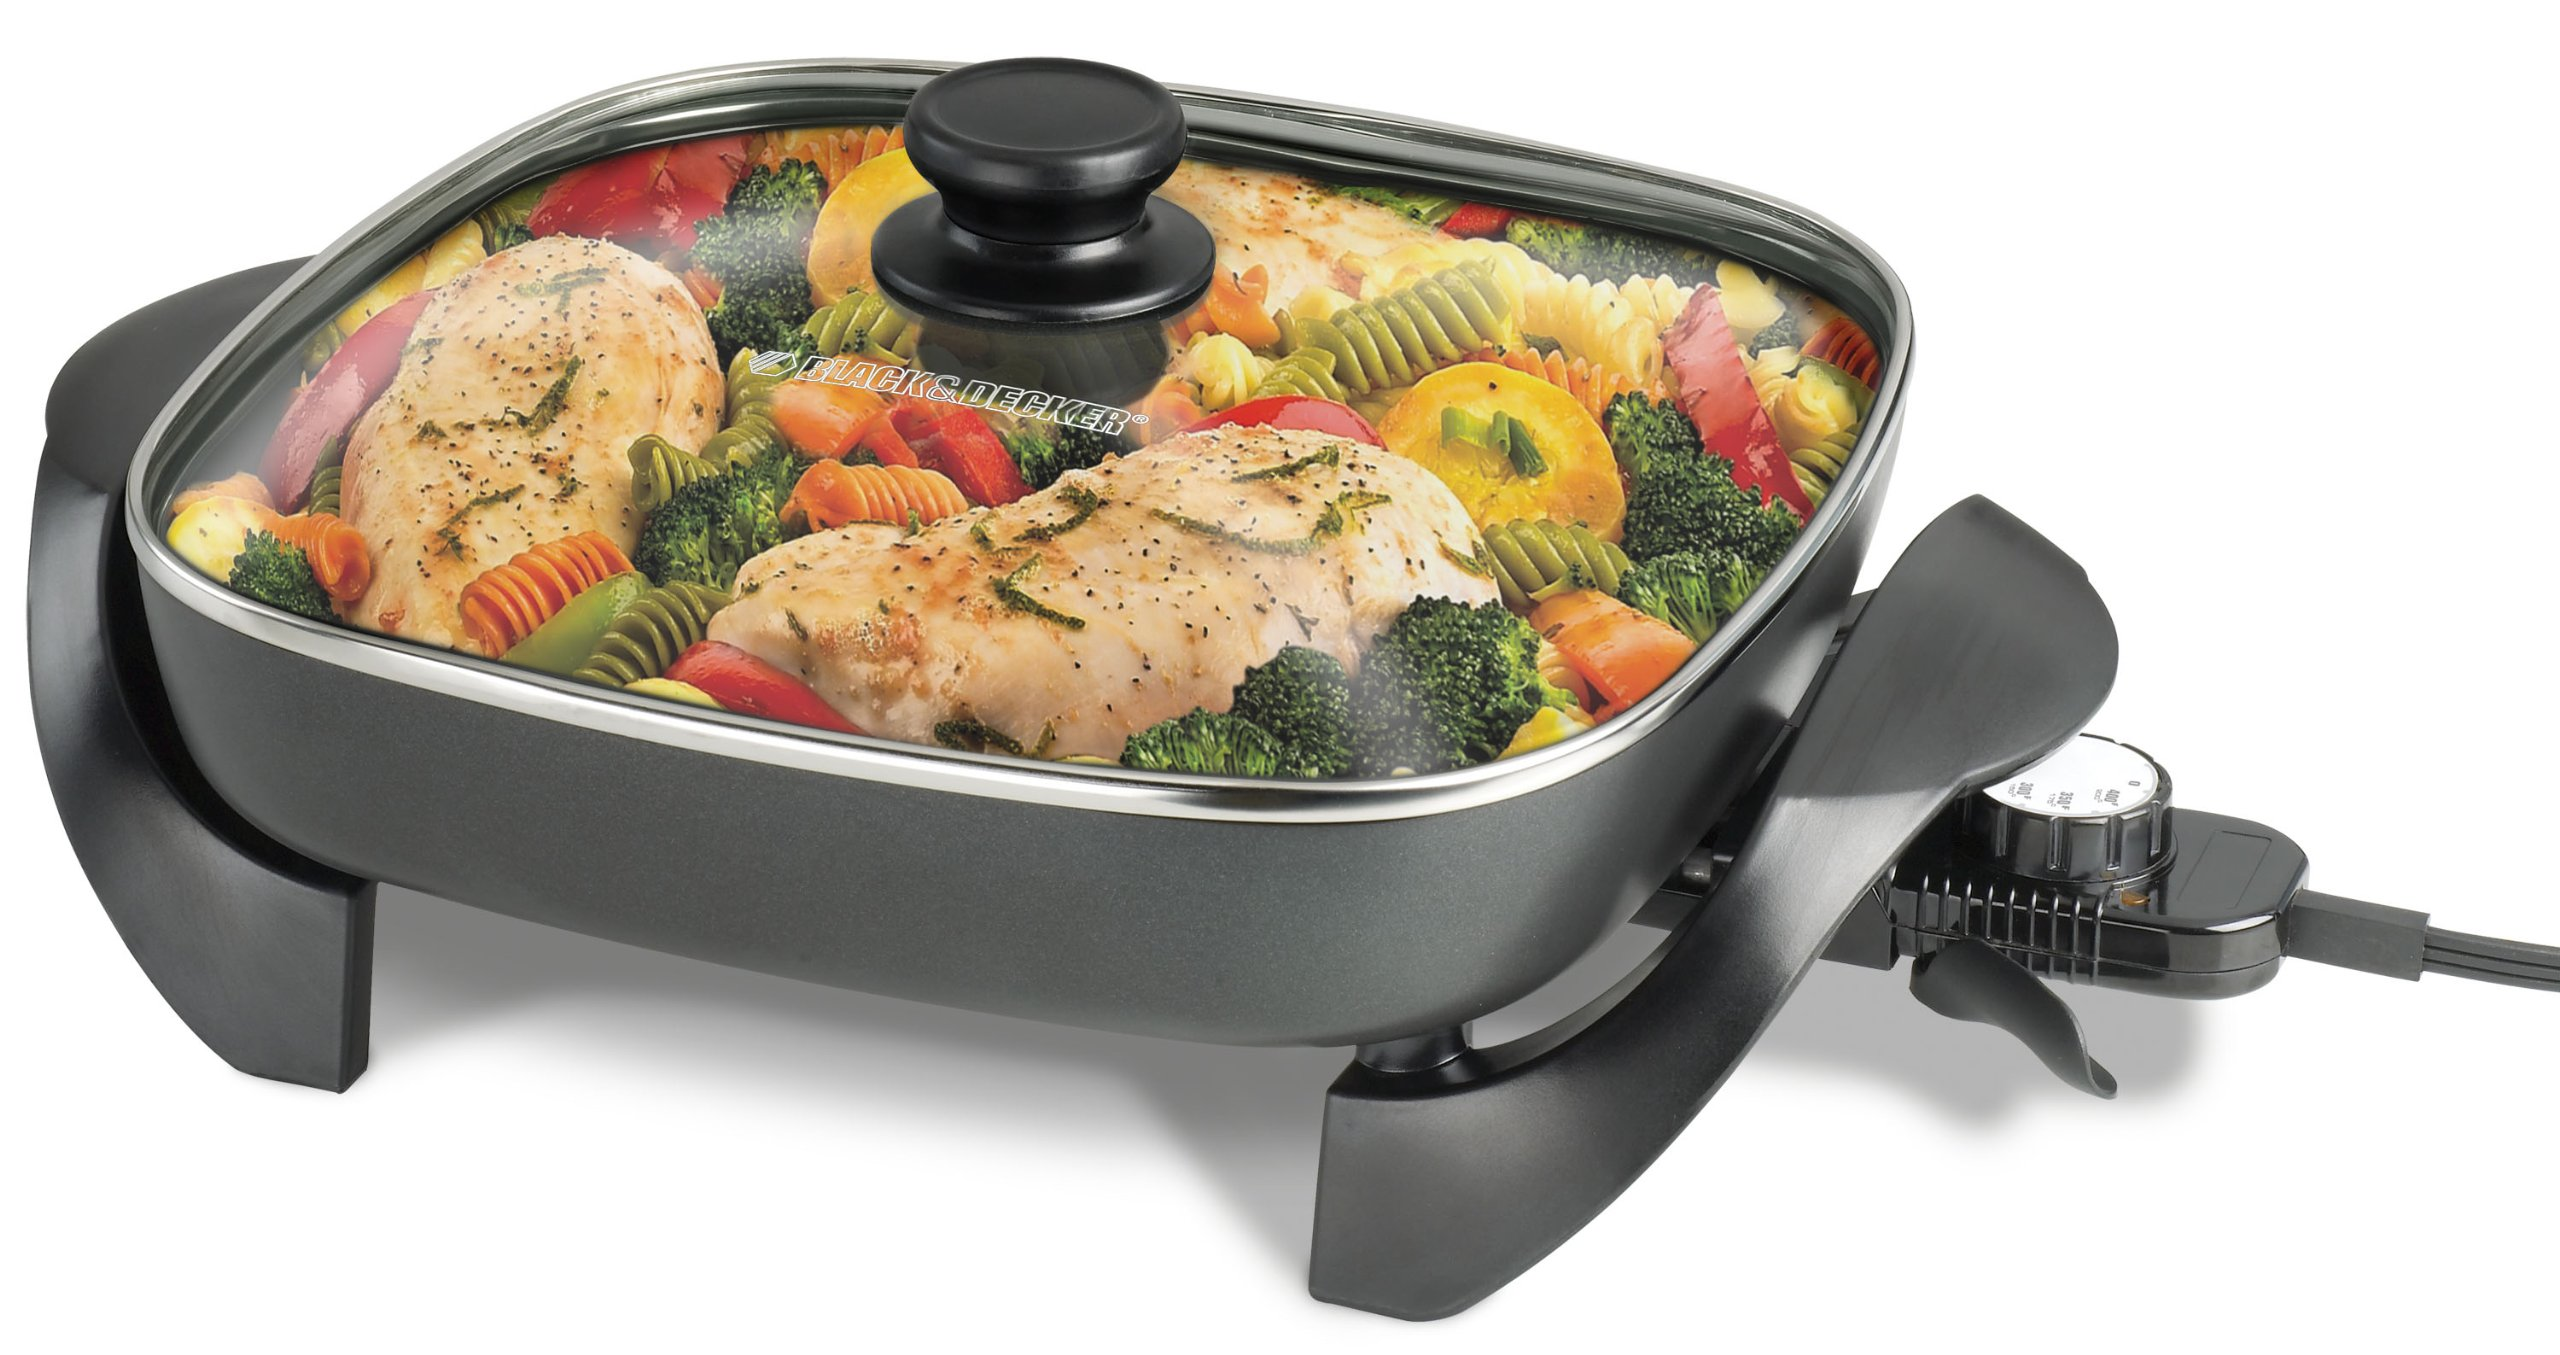 Black & Decker 12-Inch Electric Skillet